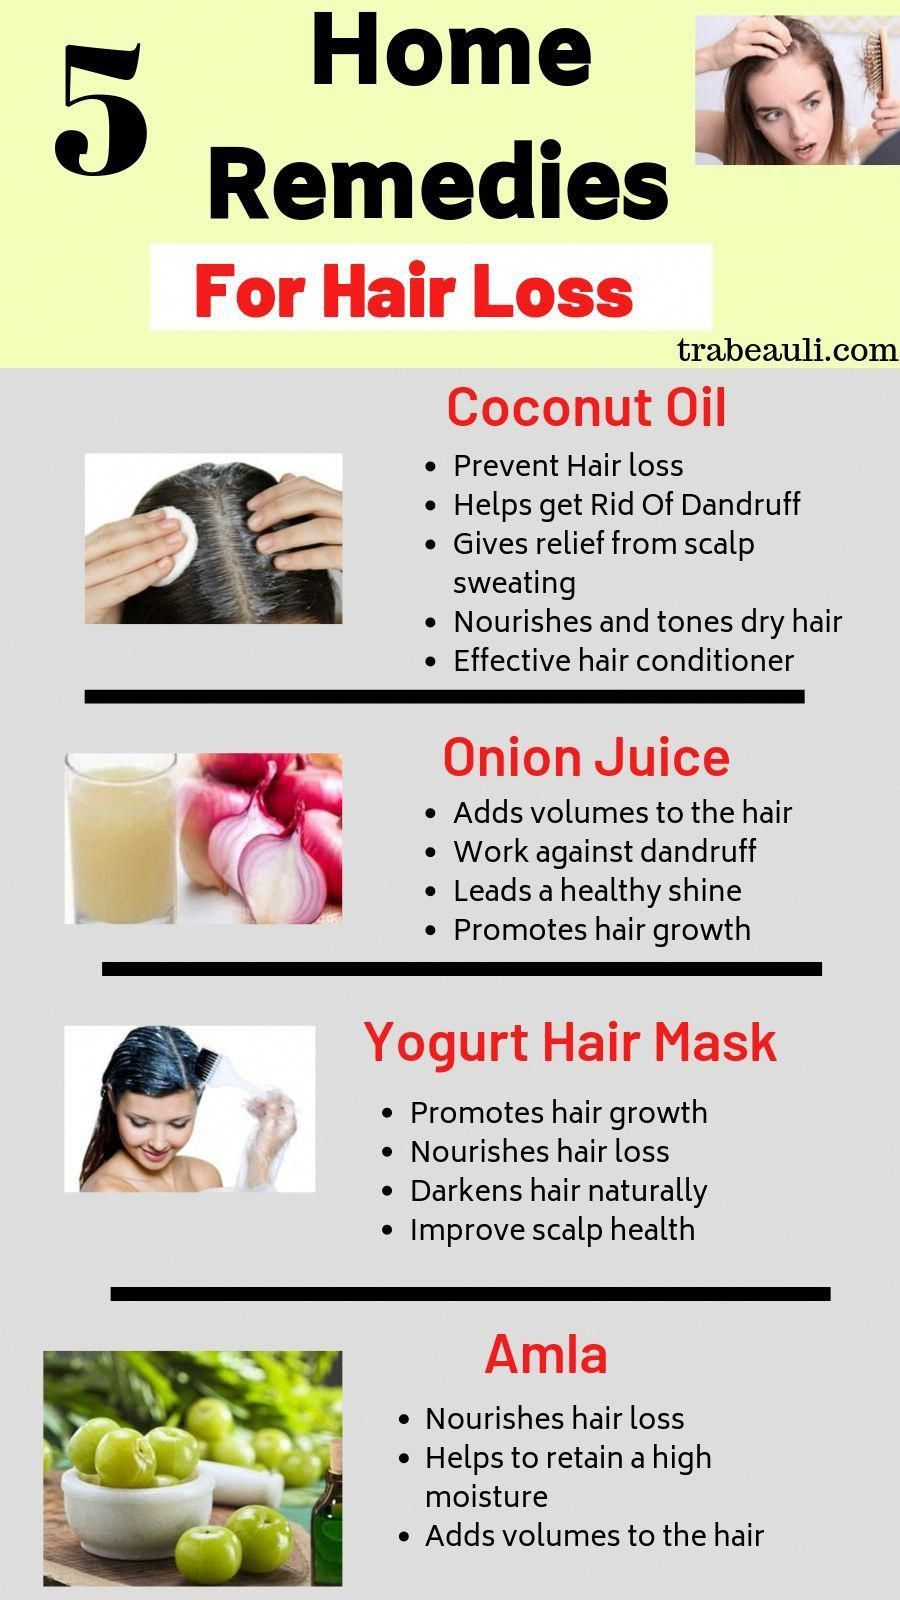 5 Natural Home Remedies To Stop Hair Loss At Home In 2020 Help Hair Loss Diy Hair Loss Treatment Hair Remedies For Growth